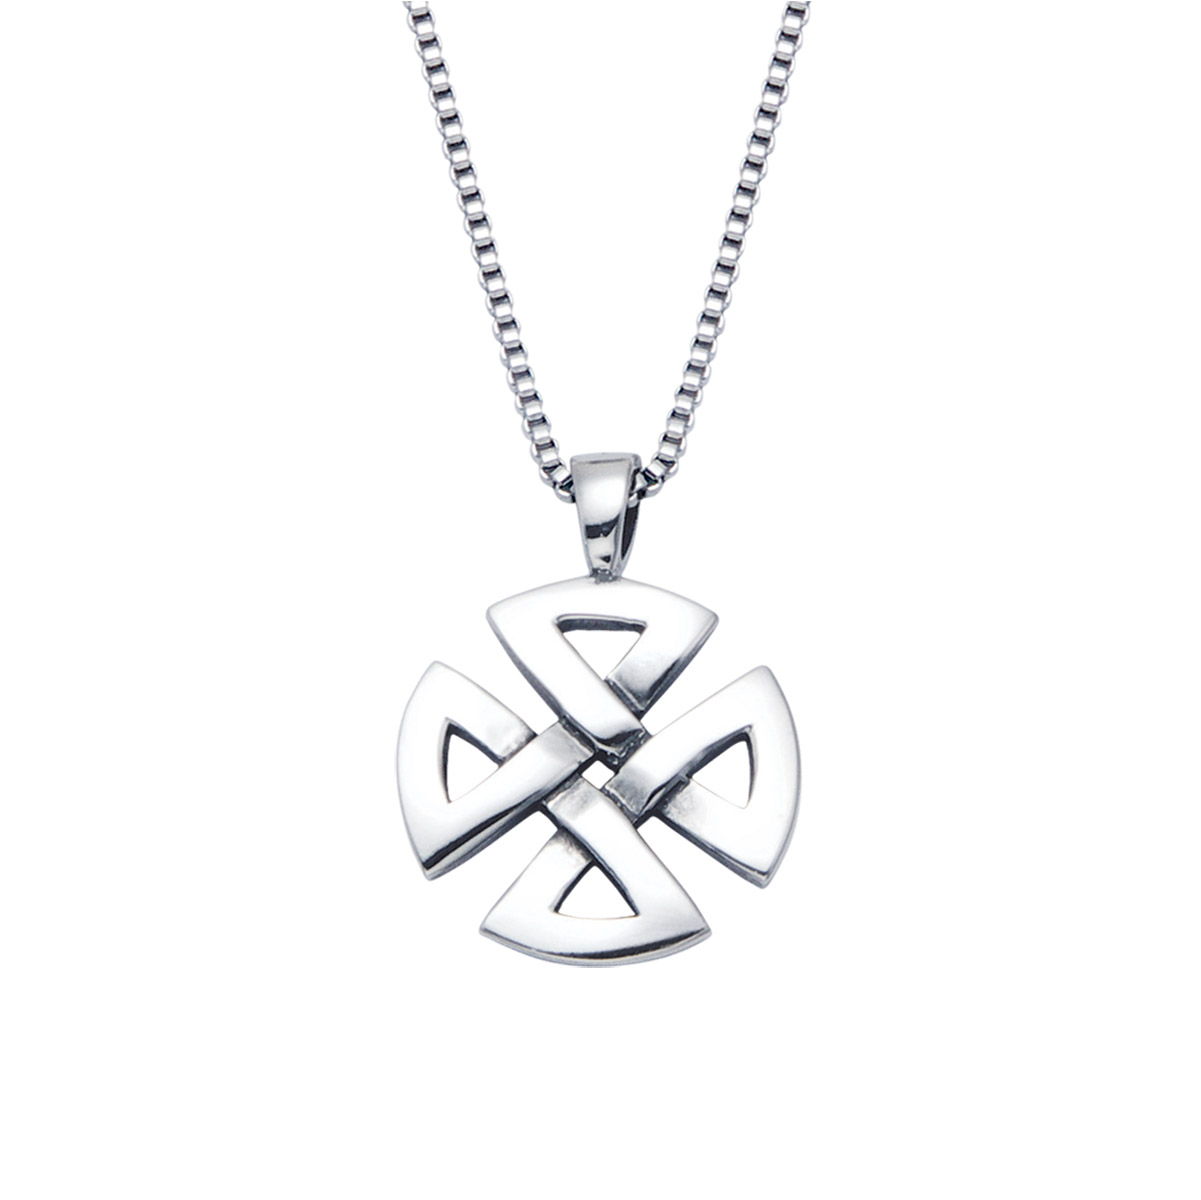 Wildthings Stainless Steel Necklace Infinity Cross with 20″ Chain